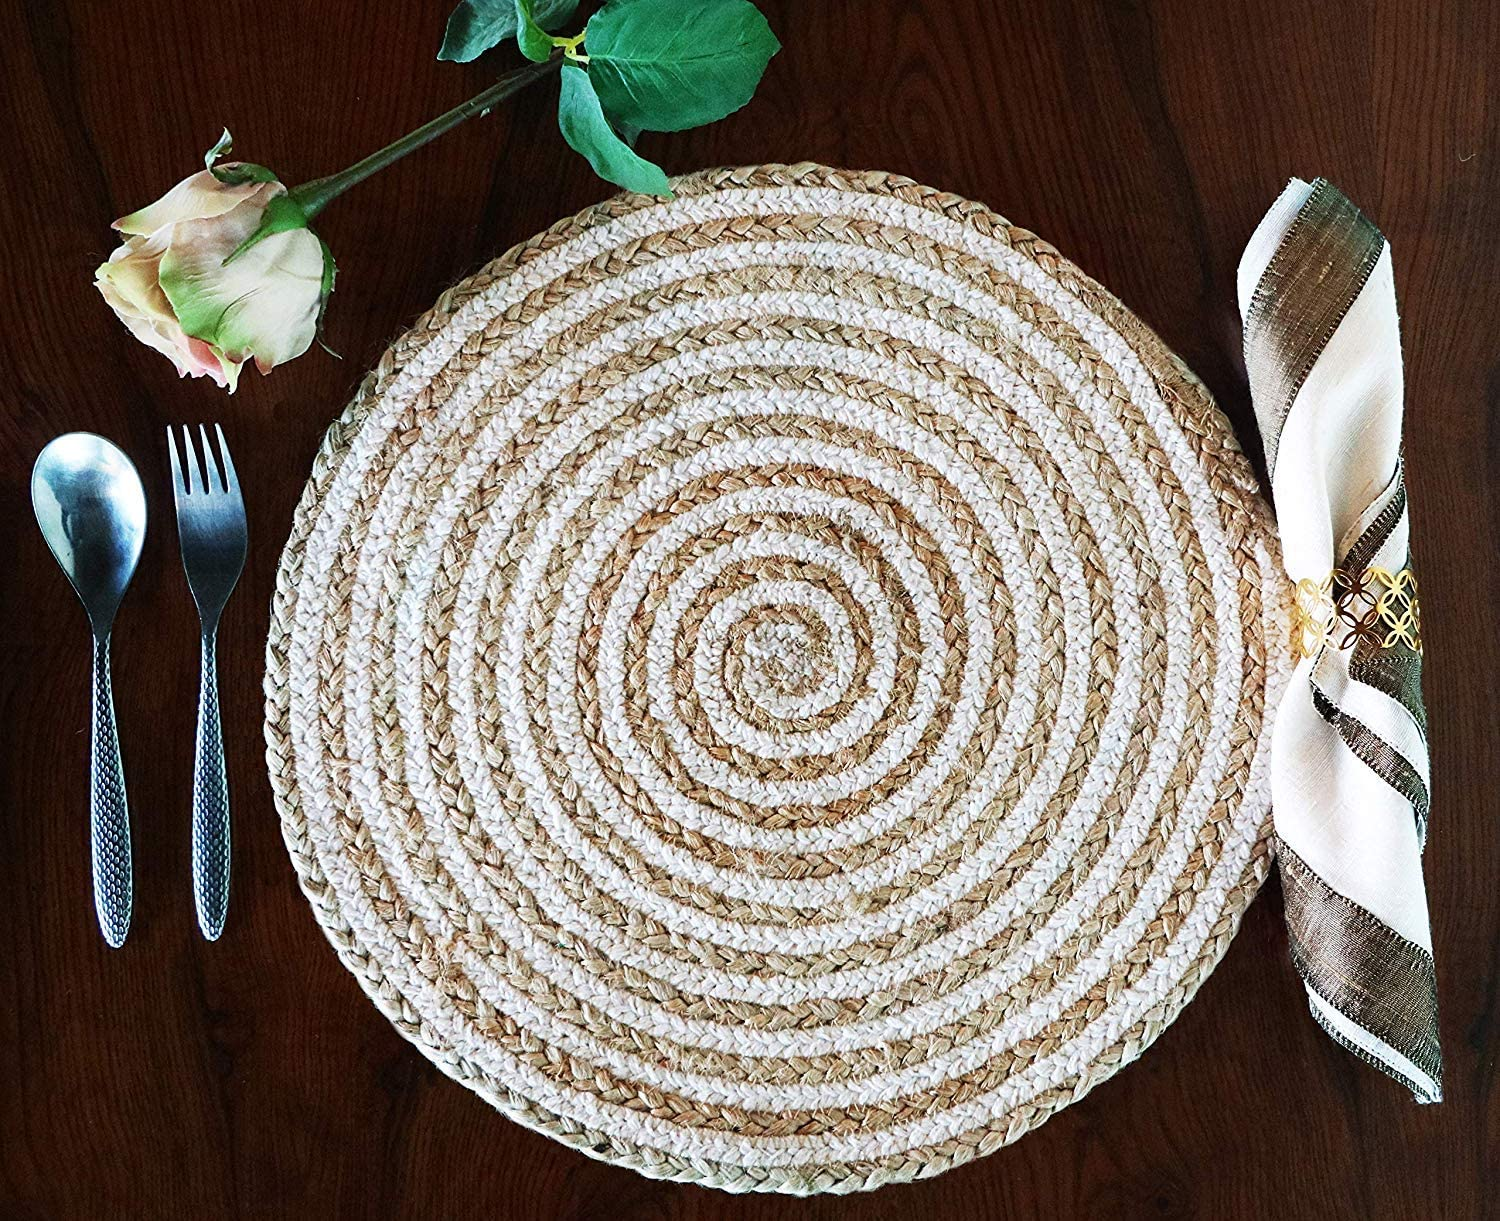 """The Home Talk Jute and Cotton Hand Braided Rustic Vintage Placemat for Parties Dining Table Holidays Use House Warming Gift (14"""" Round Diameter, White) Set of 4"""